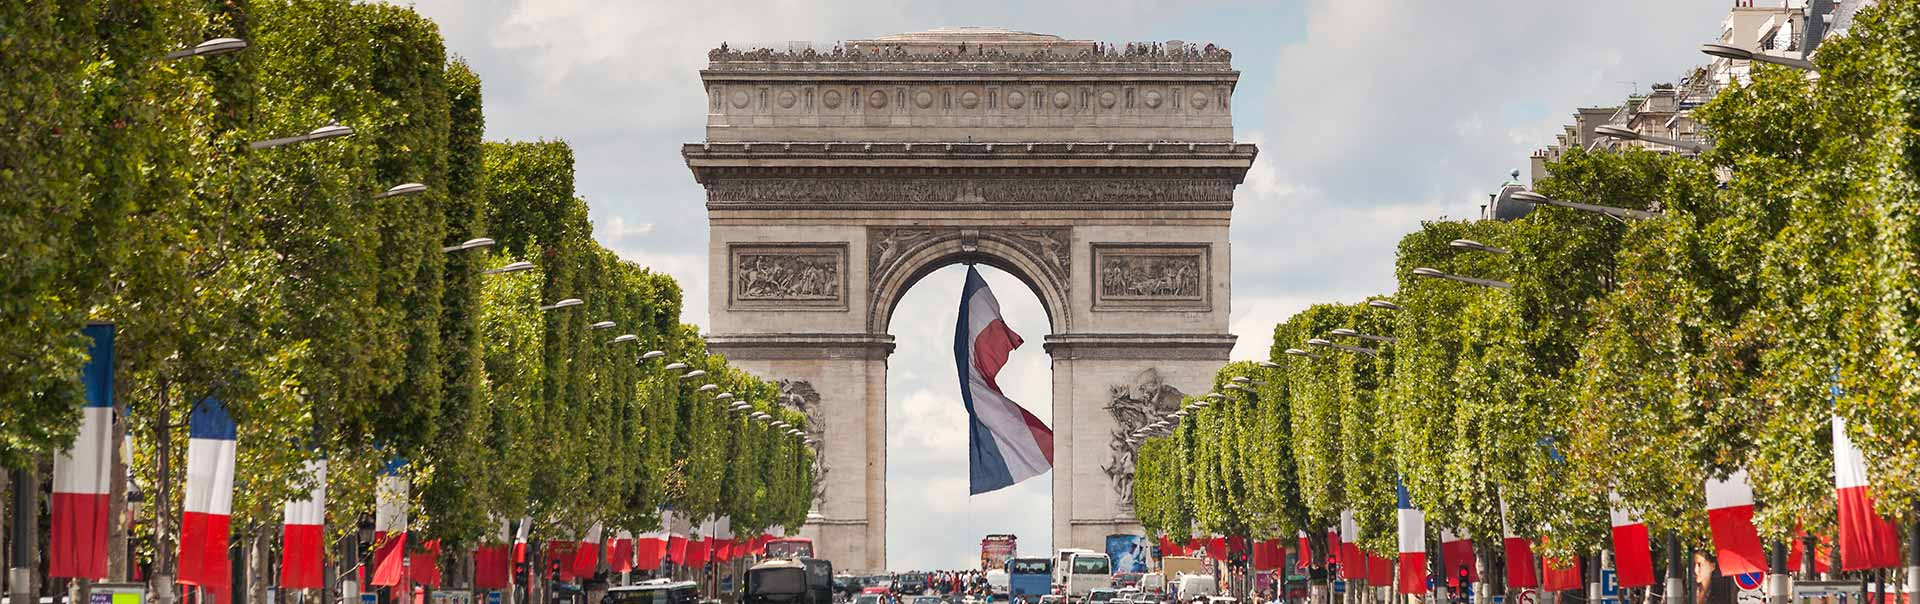 L'Arc de Triomphe in the City of Paris, Île-de-France, France